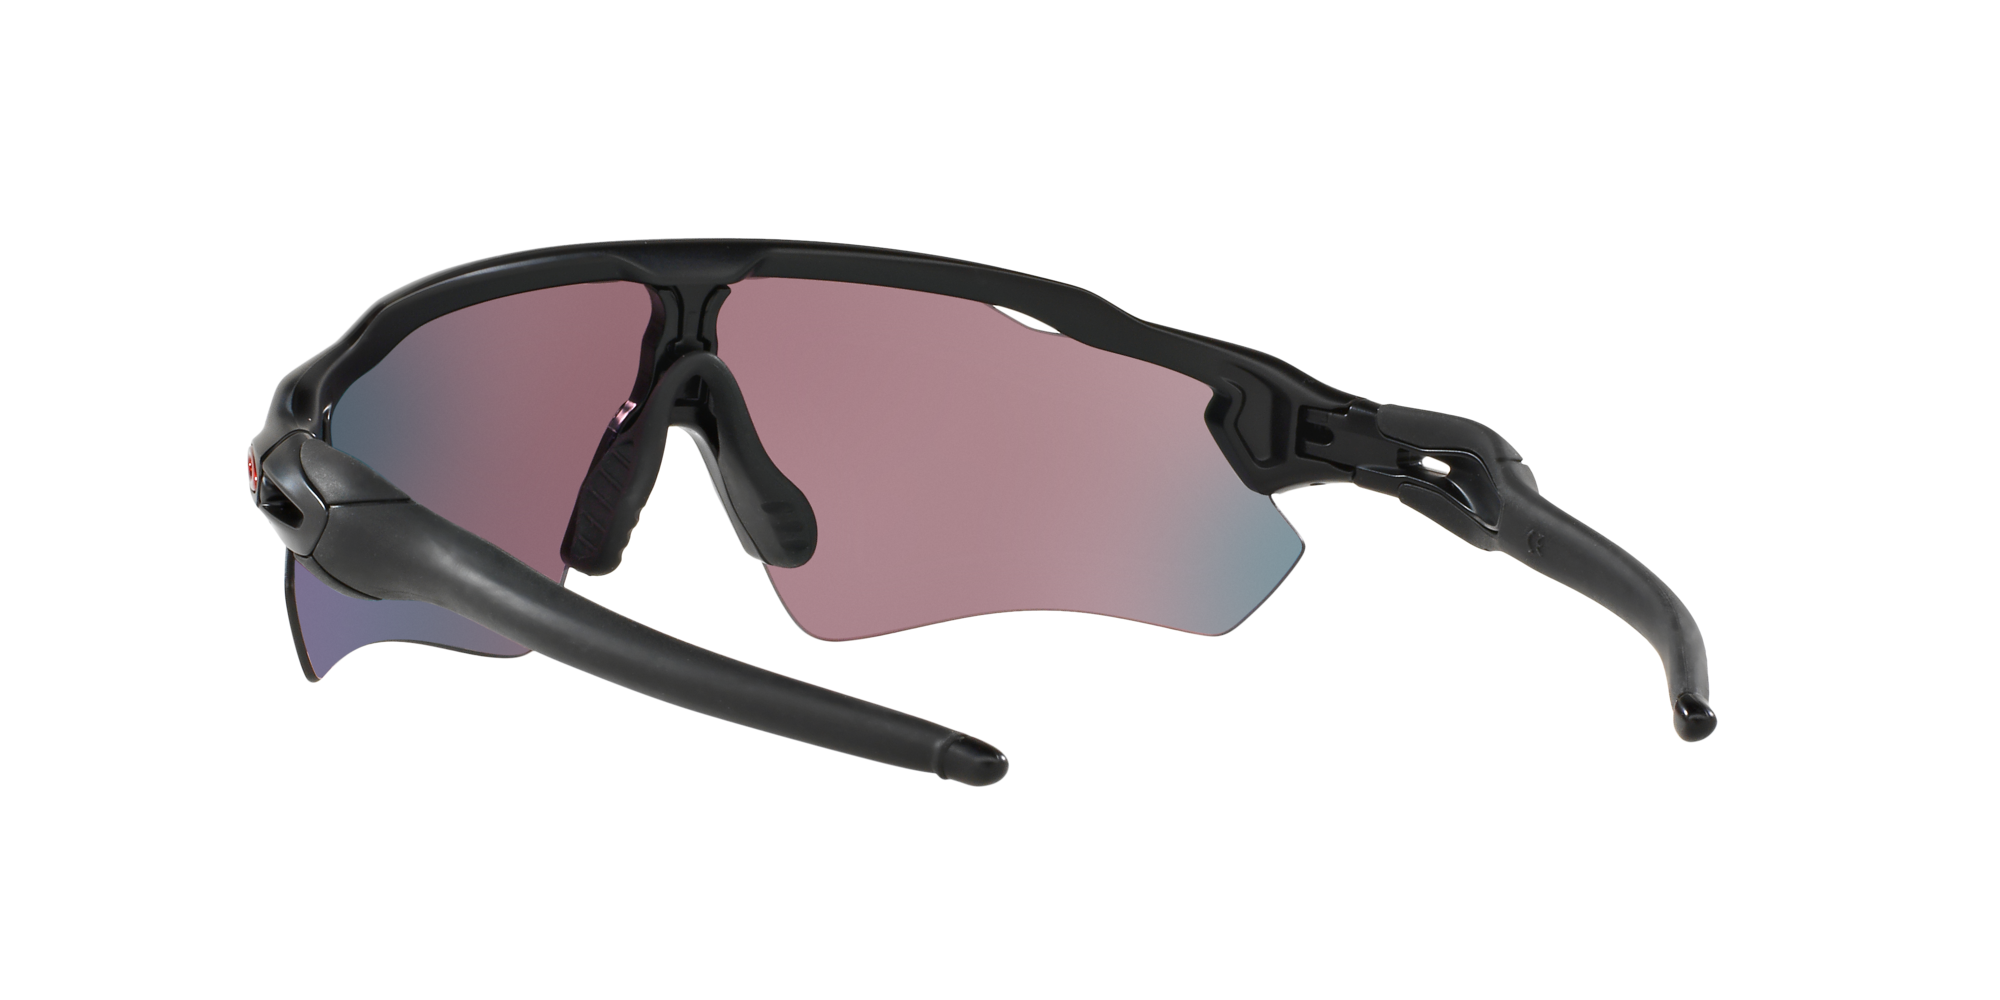 e23a9a21ae Sunglasses Oakley Radar Ev path Black Matte Prizm road OO9208 4638 55-15  Large Mirror